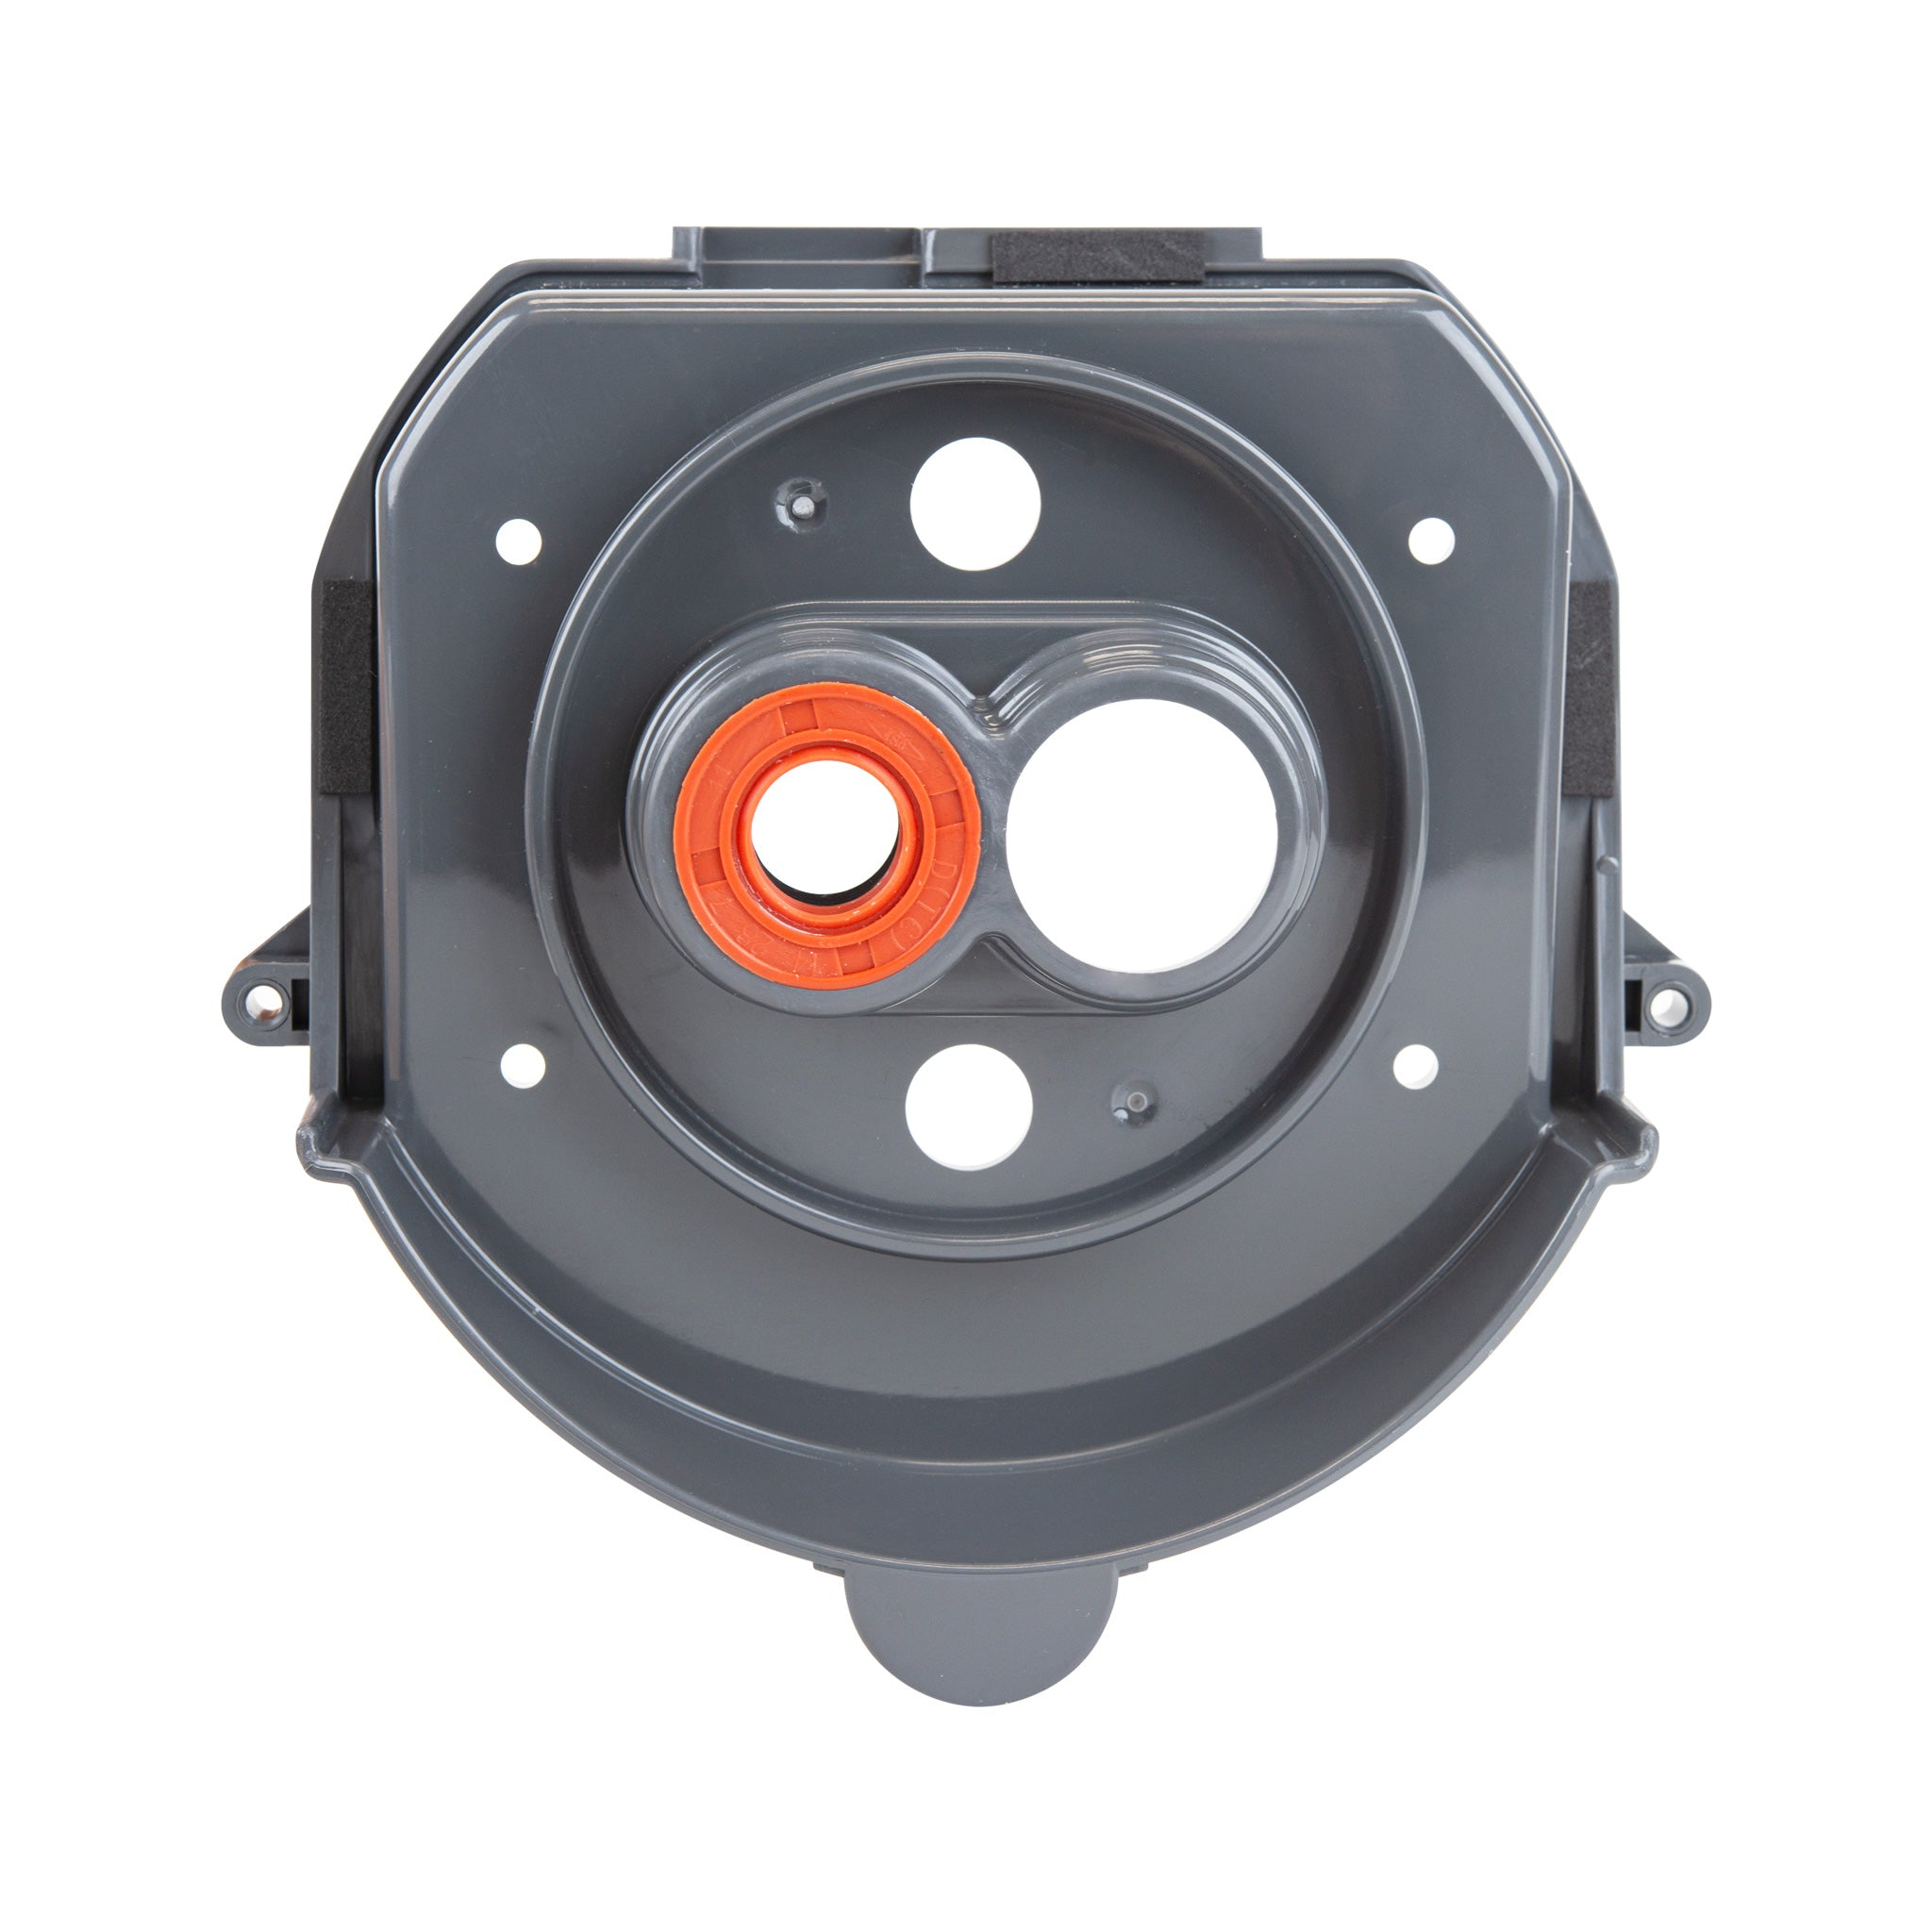 Greenstar® Pro Gray Plastic Speed Reducer Cover